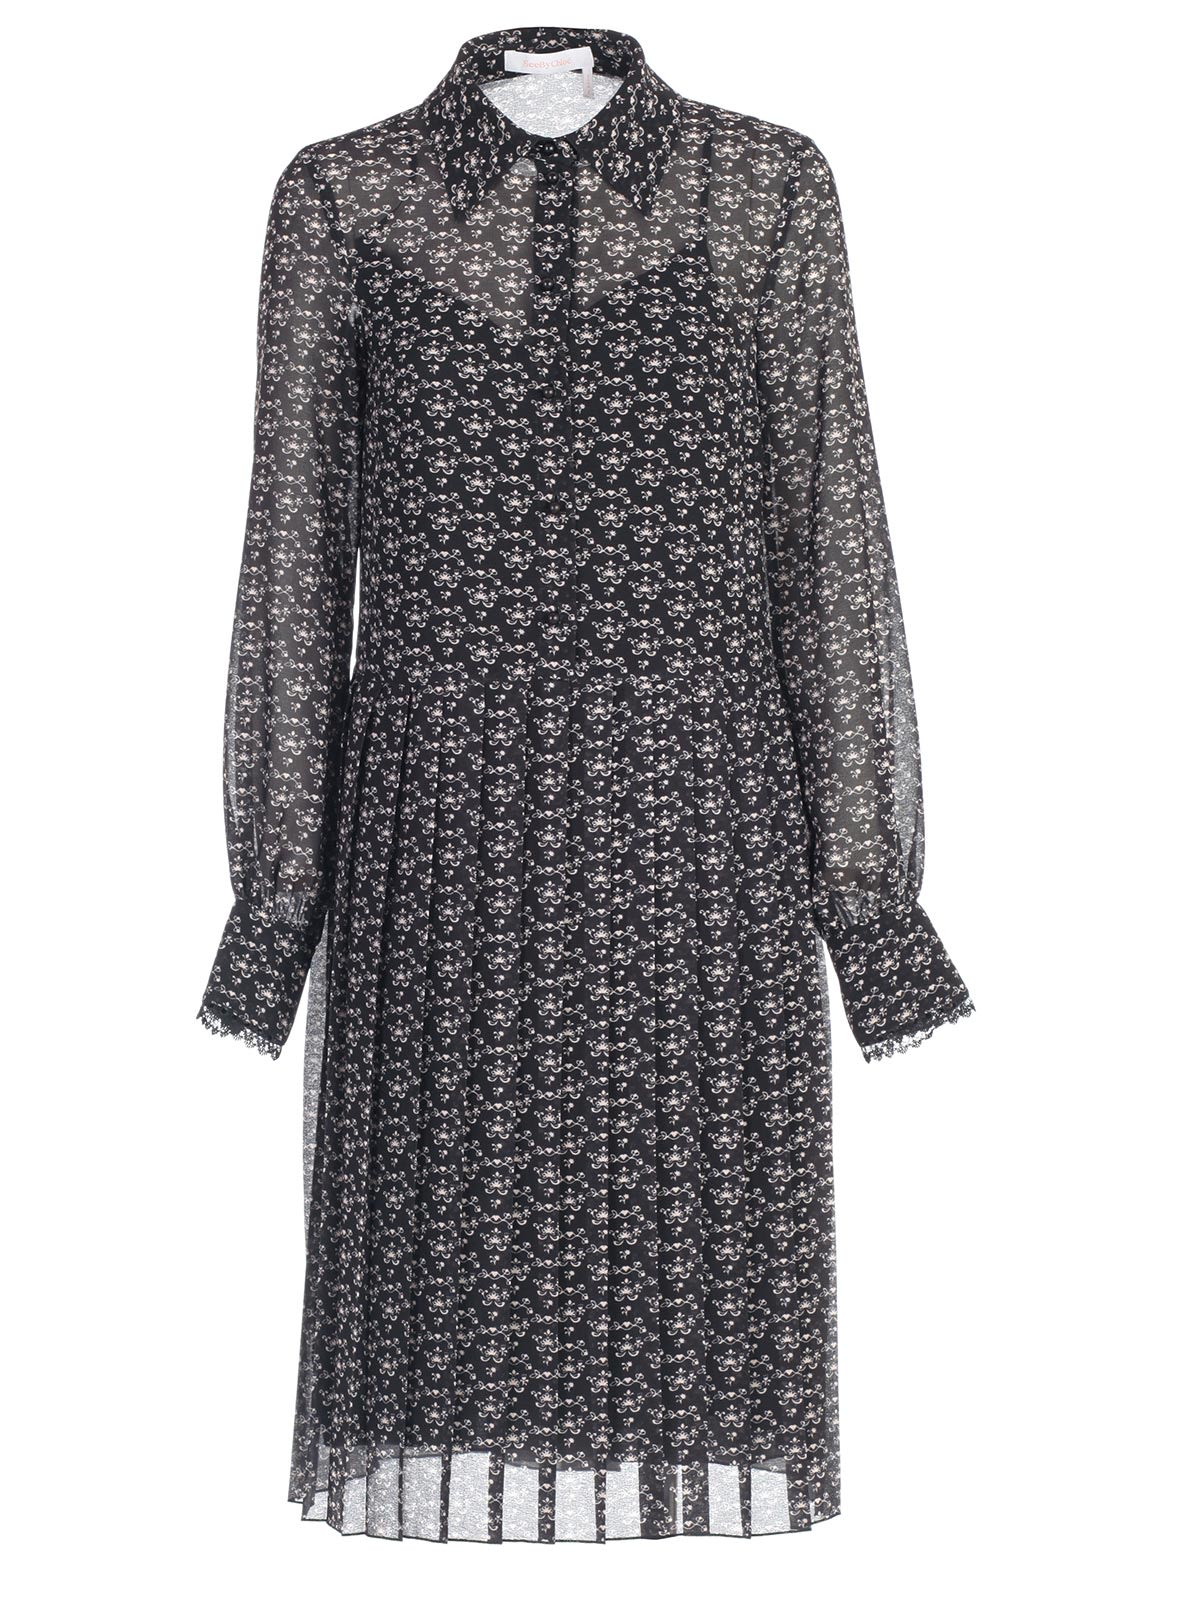 Buy See by Chloé Dress L/s Chemisier W/plisse In Front online, shop See by Chloé with free shipping